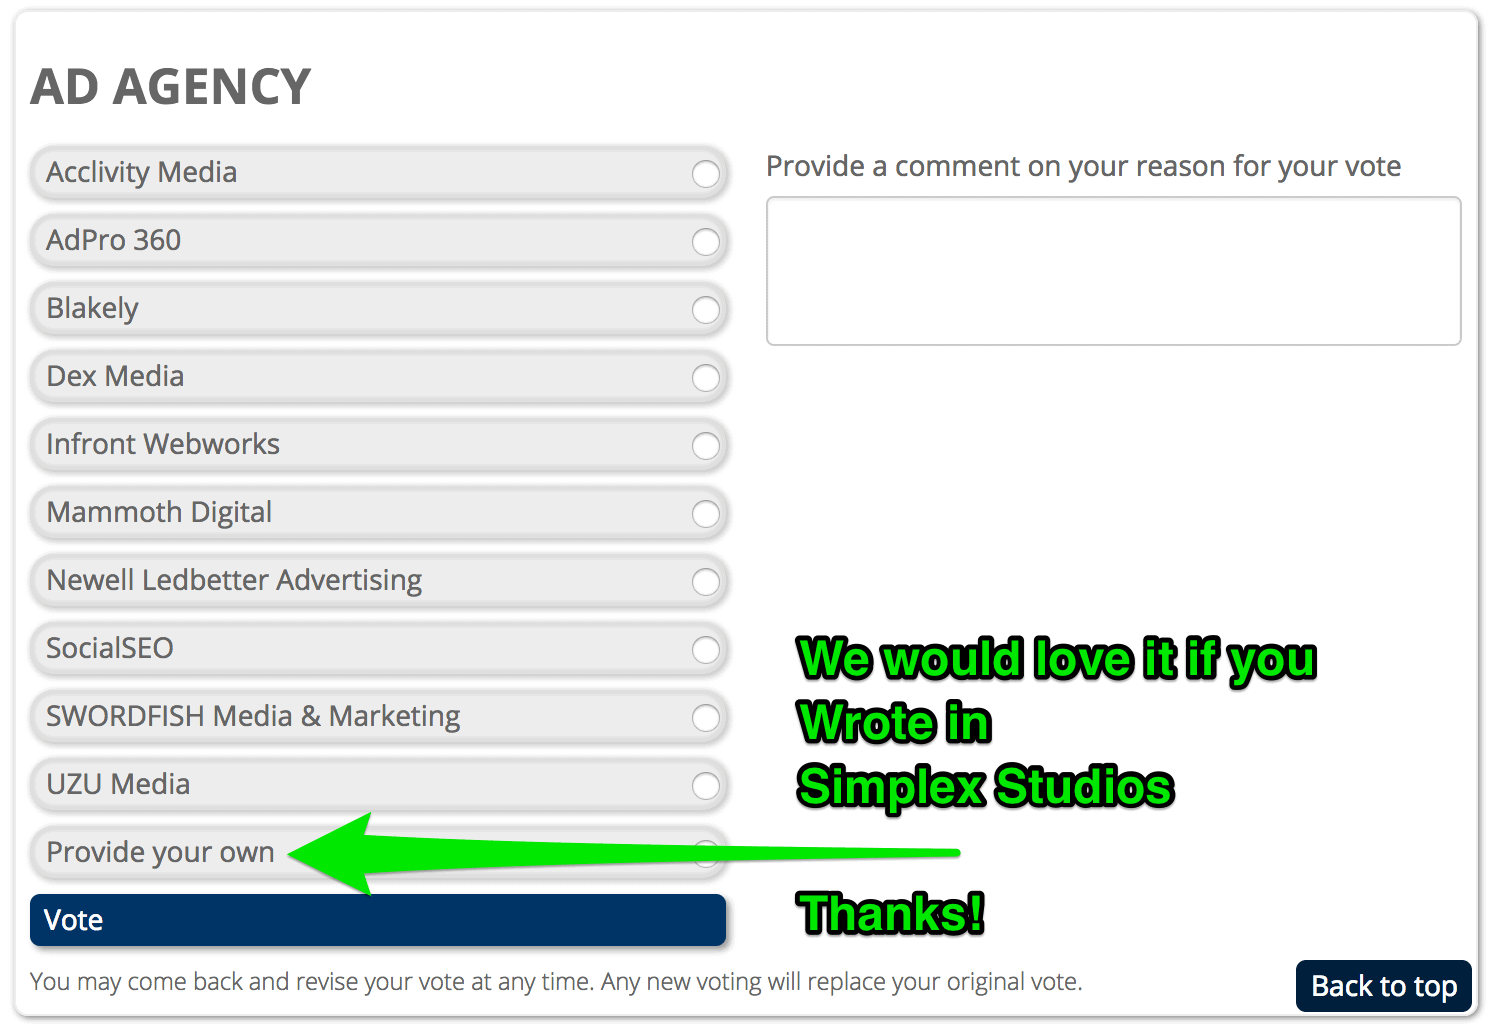 The_Best_of_the_Springs_voting_simplex_studios